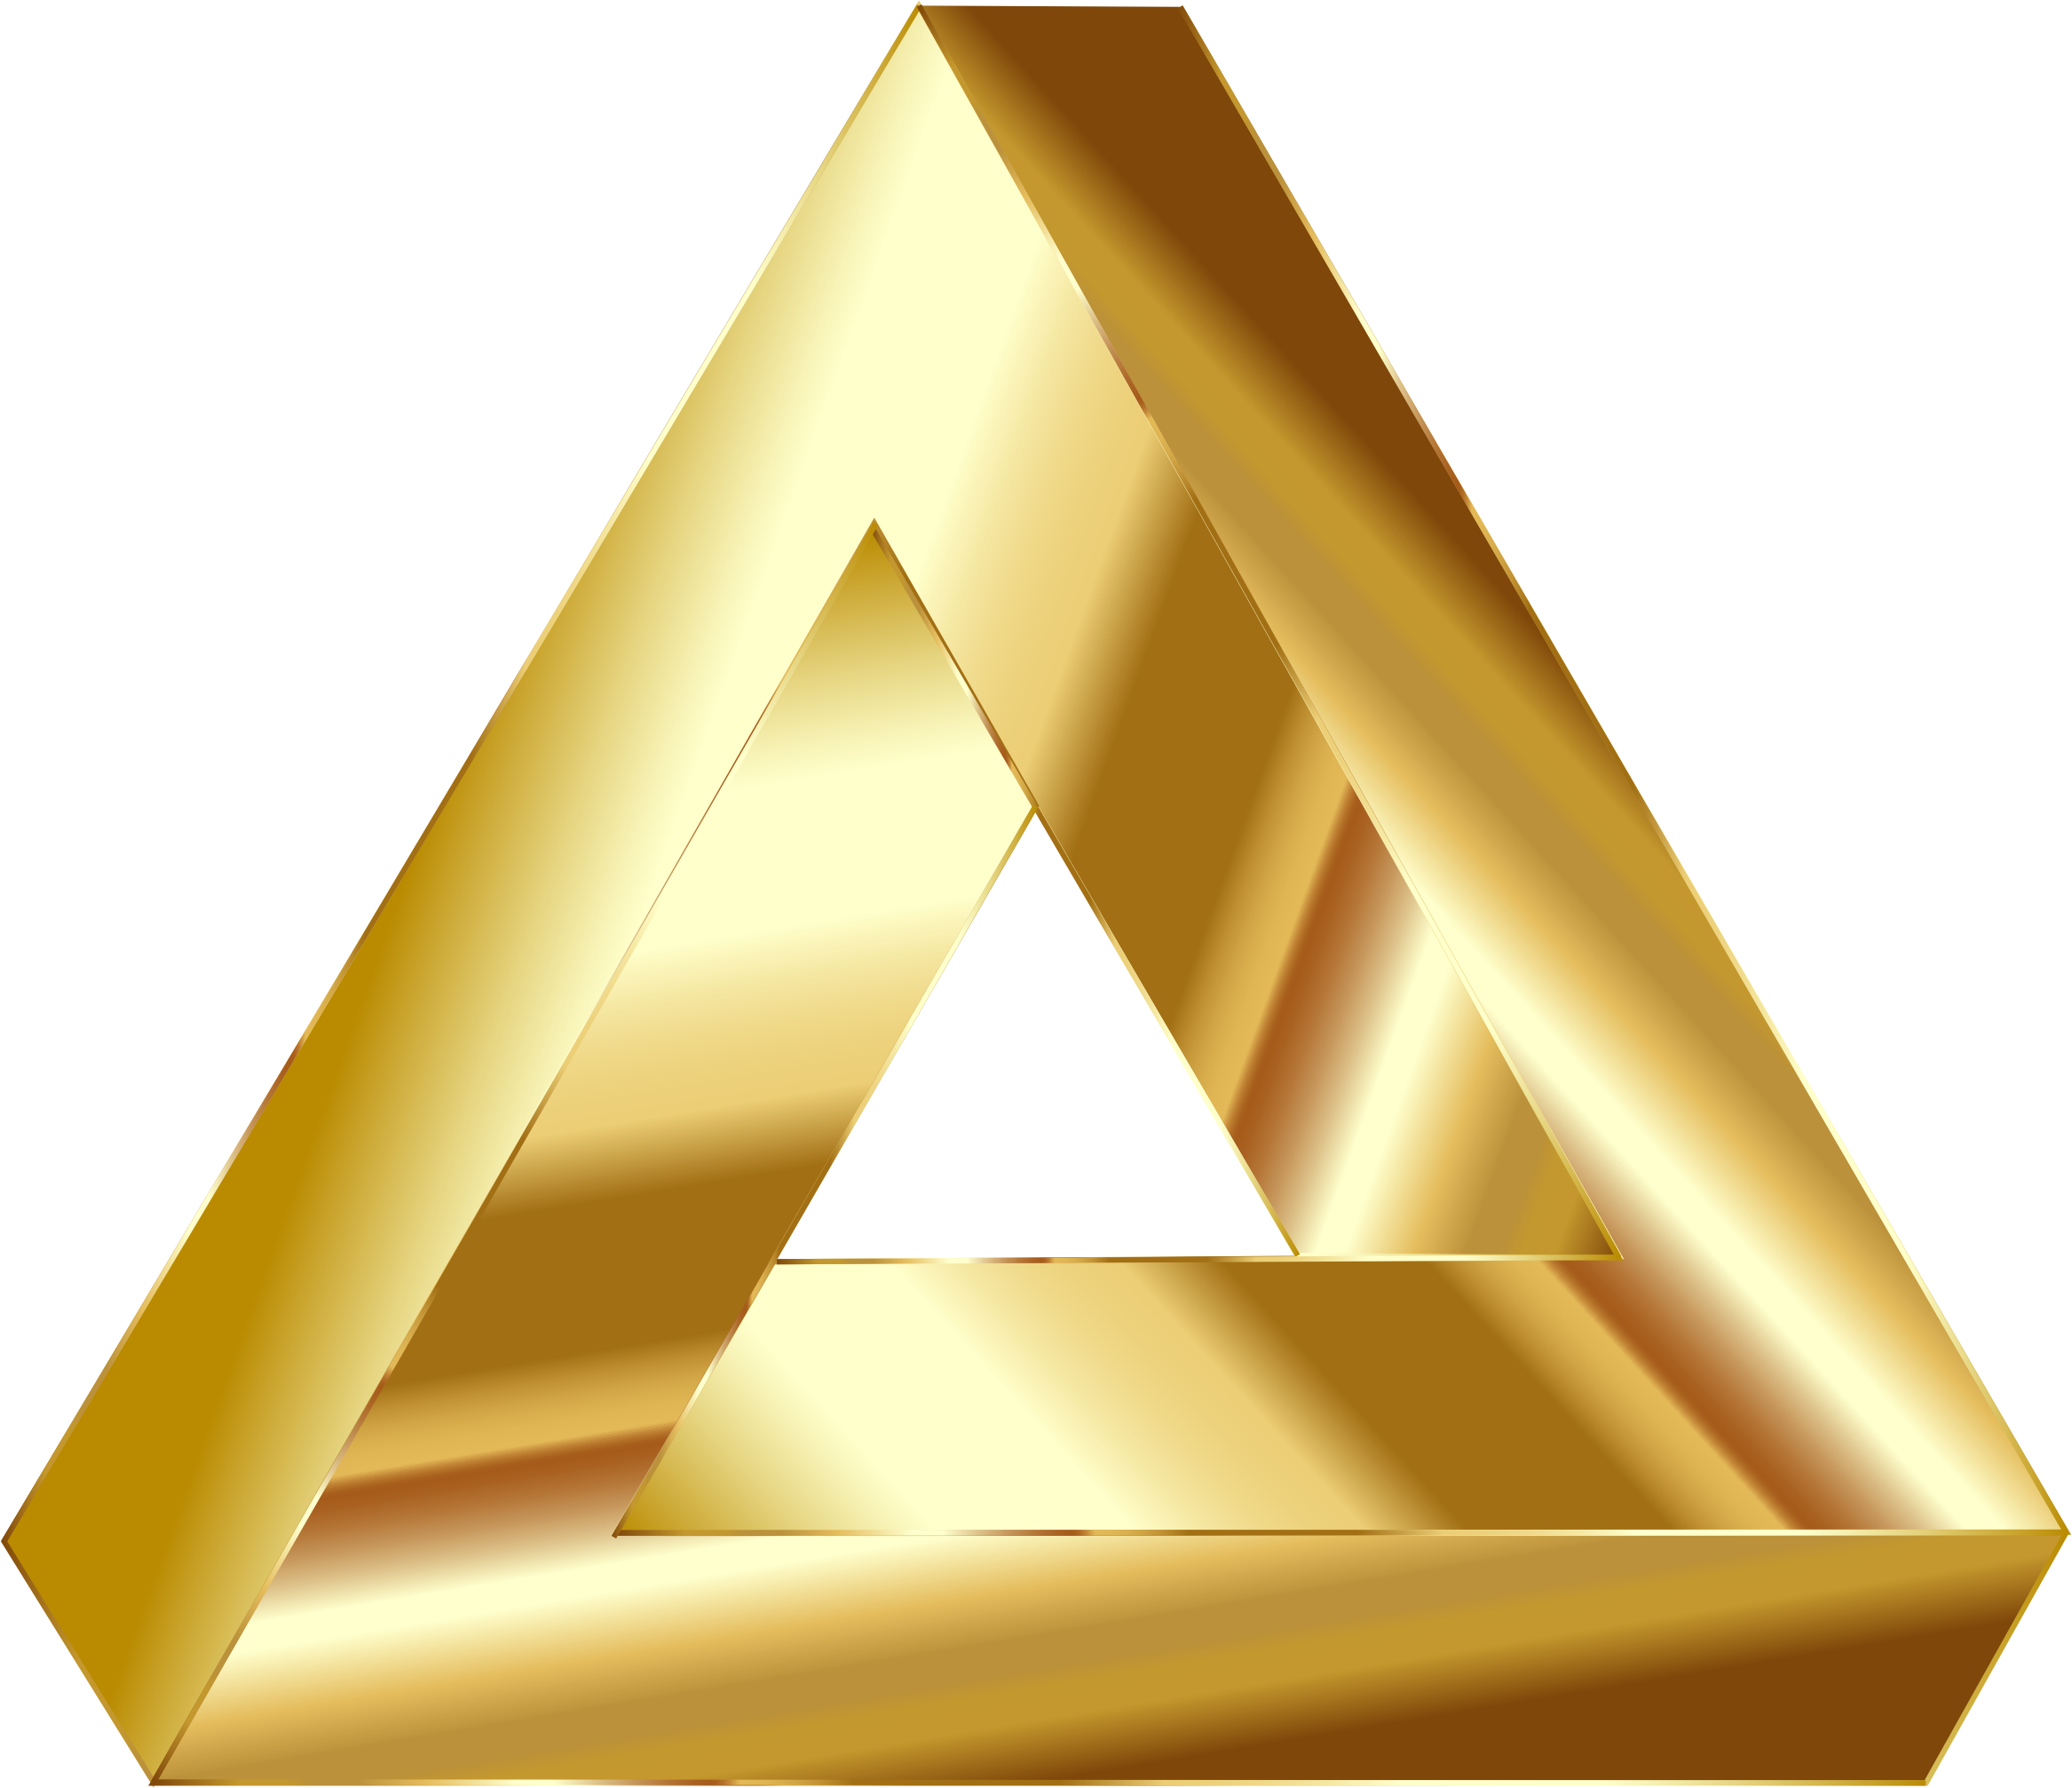 Gold Penrose Triangle by GDJ